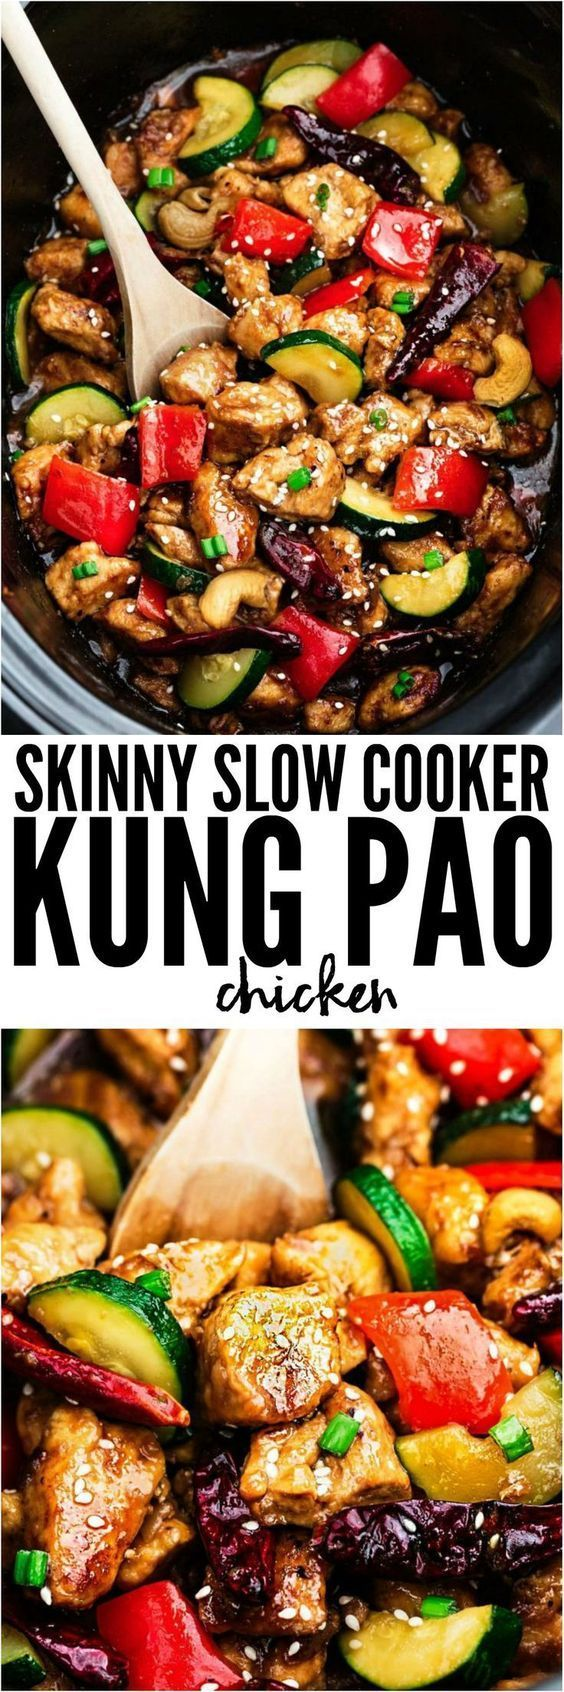 Skinny Slow Cooker Kung Pao Chicken | The Recipe Critic -  A delicious Skinny Slow Cooker Kung Pao Chicken coated in a sweet and spicy sauce with tender veget - #beetatto #chicken #cooker #critic #crockpotrecipes #dinnerrecipes #foottatto #healthyrecipes #Kung #paleorecipes #Pao #recipe #recipeseasy #skinny #Slow #tattofamily